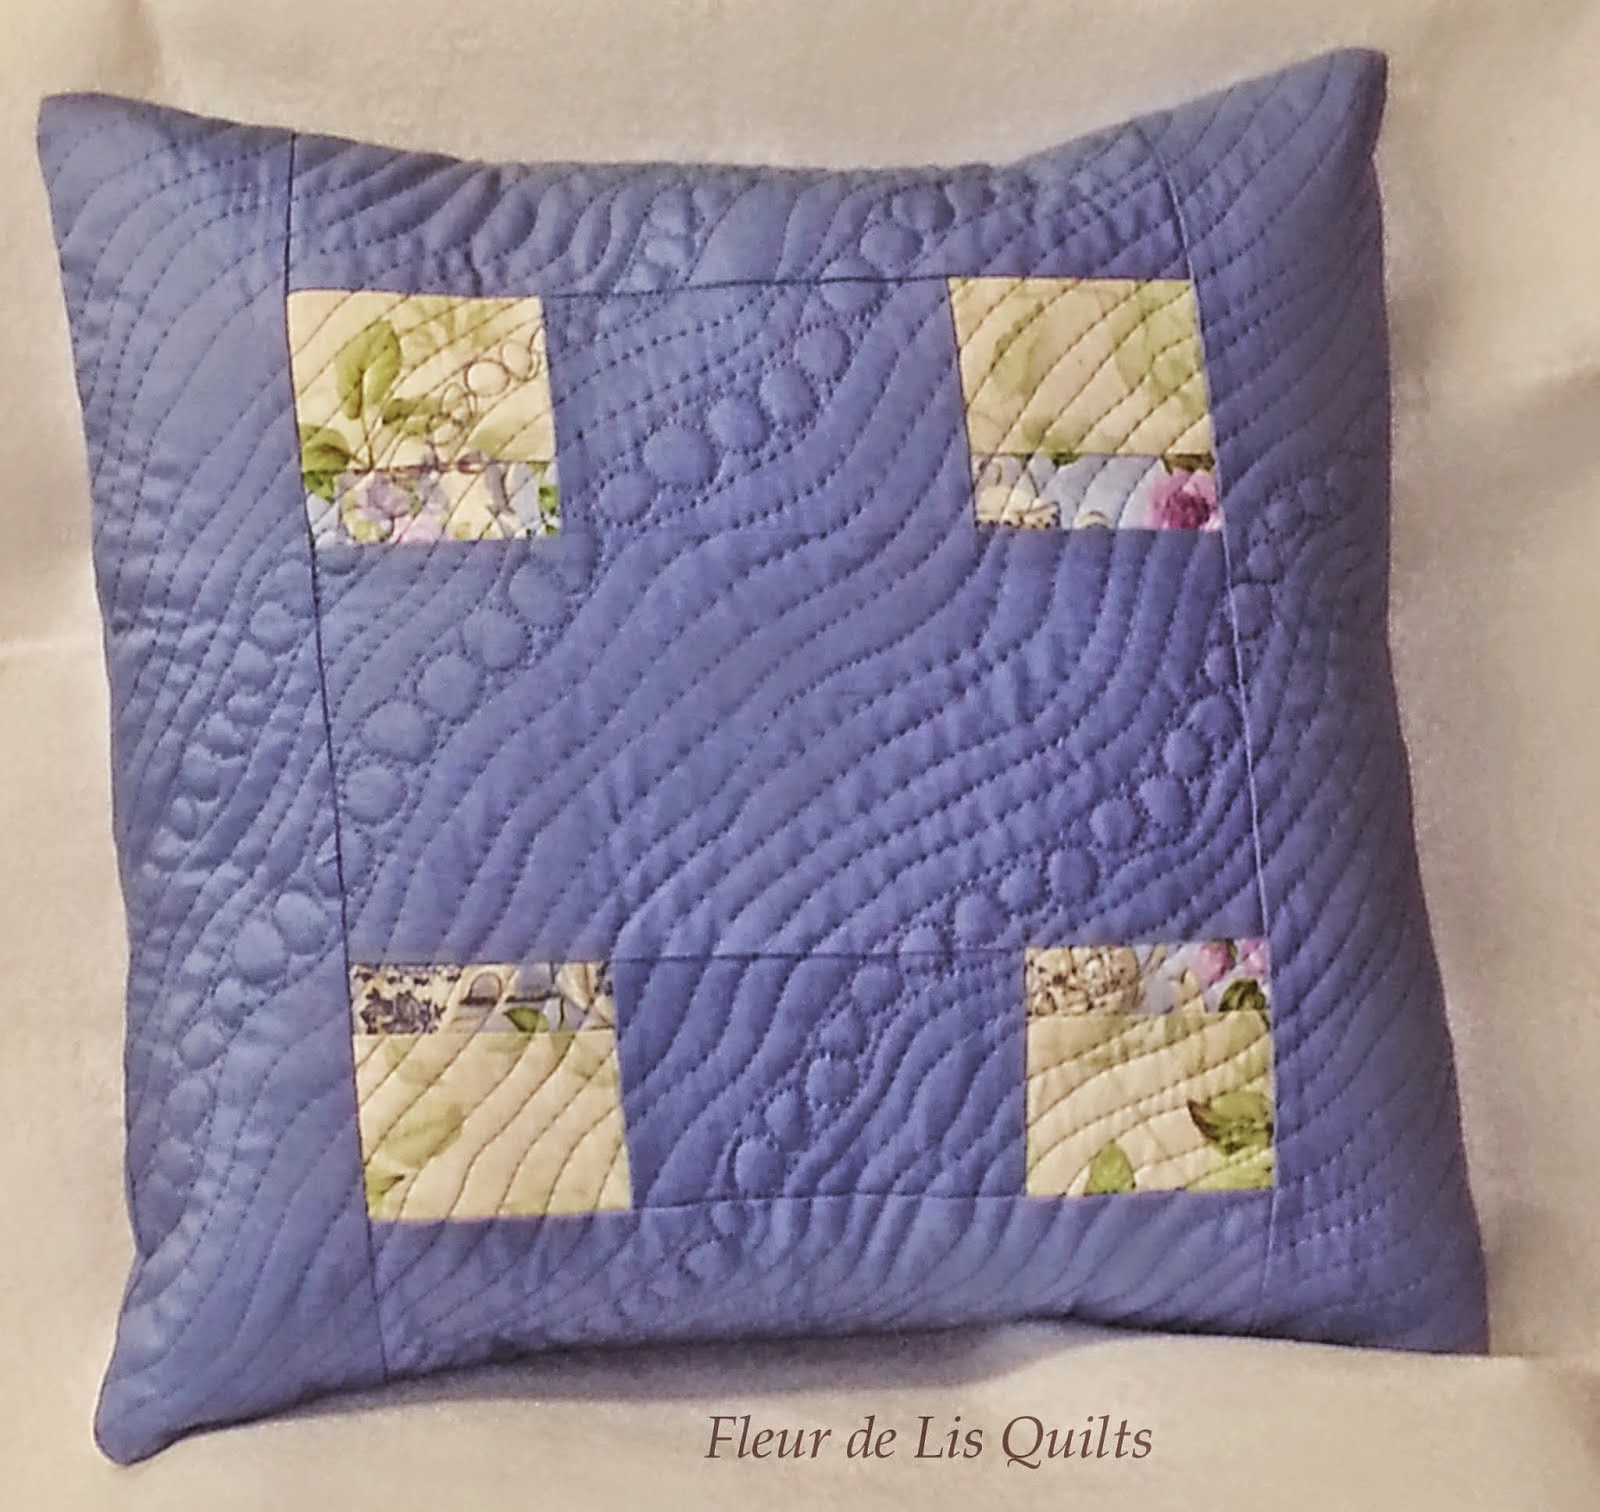 http://fleurdelisquilts.blogspot.com/2015/01/blue-pillow-tutorial.html